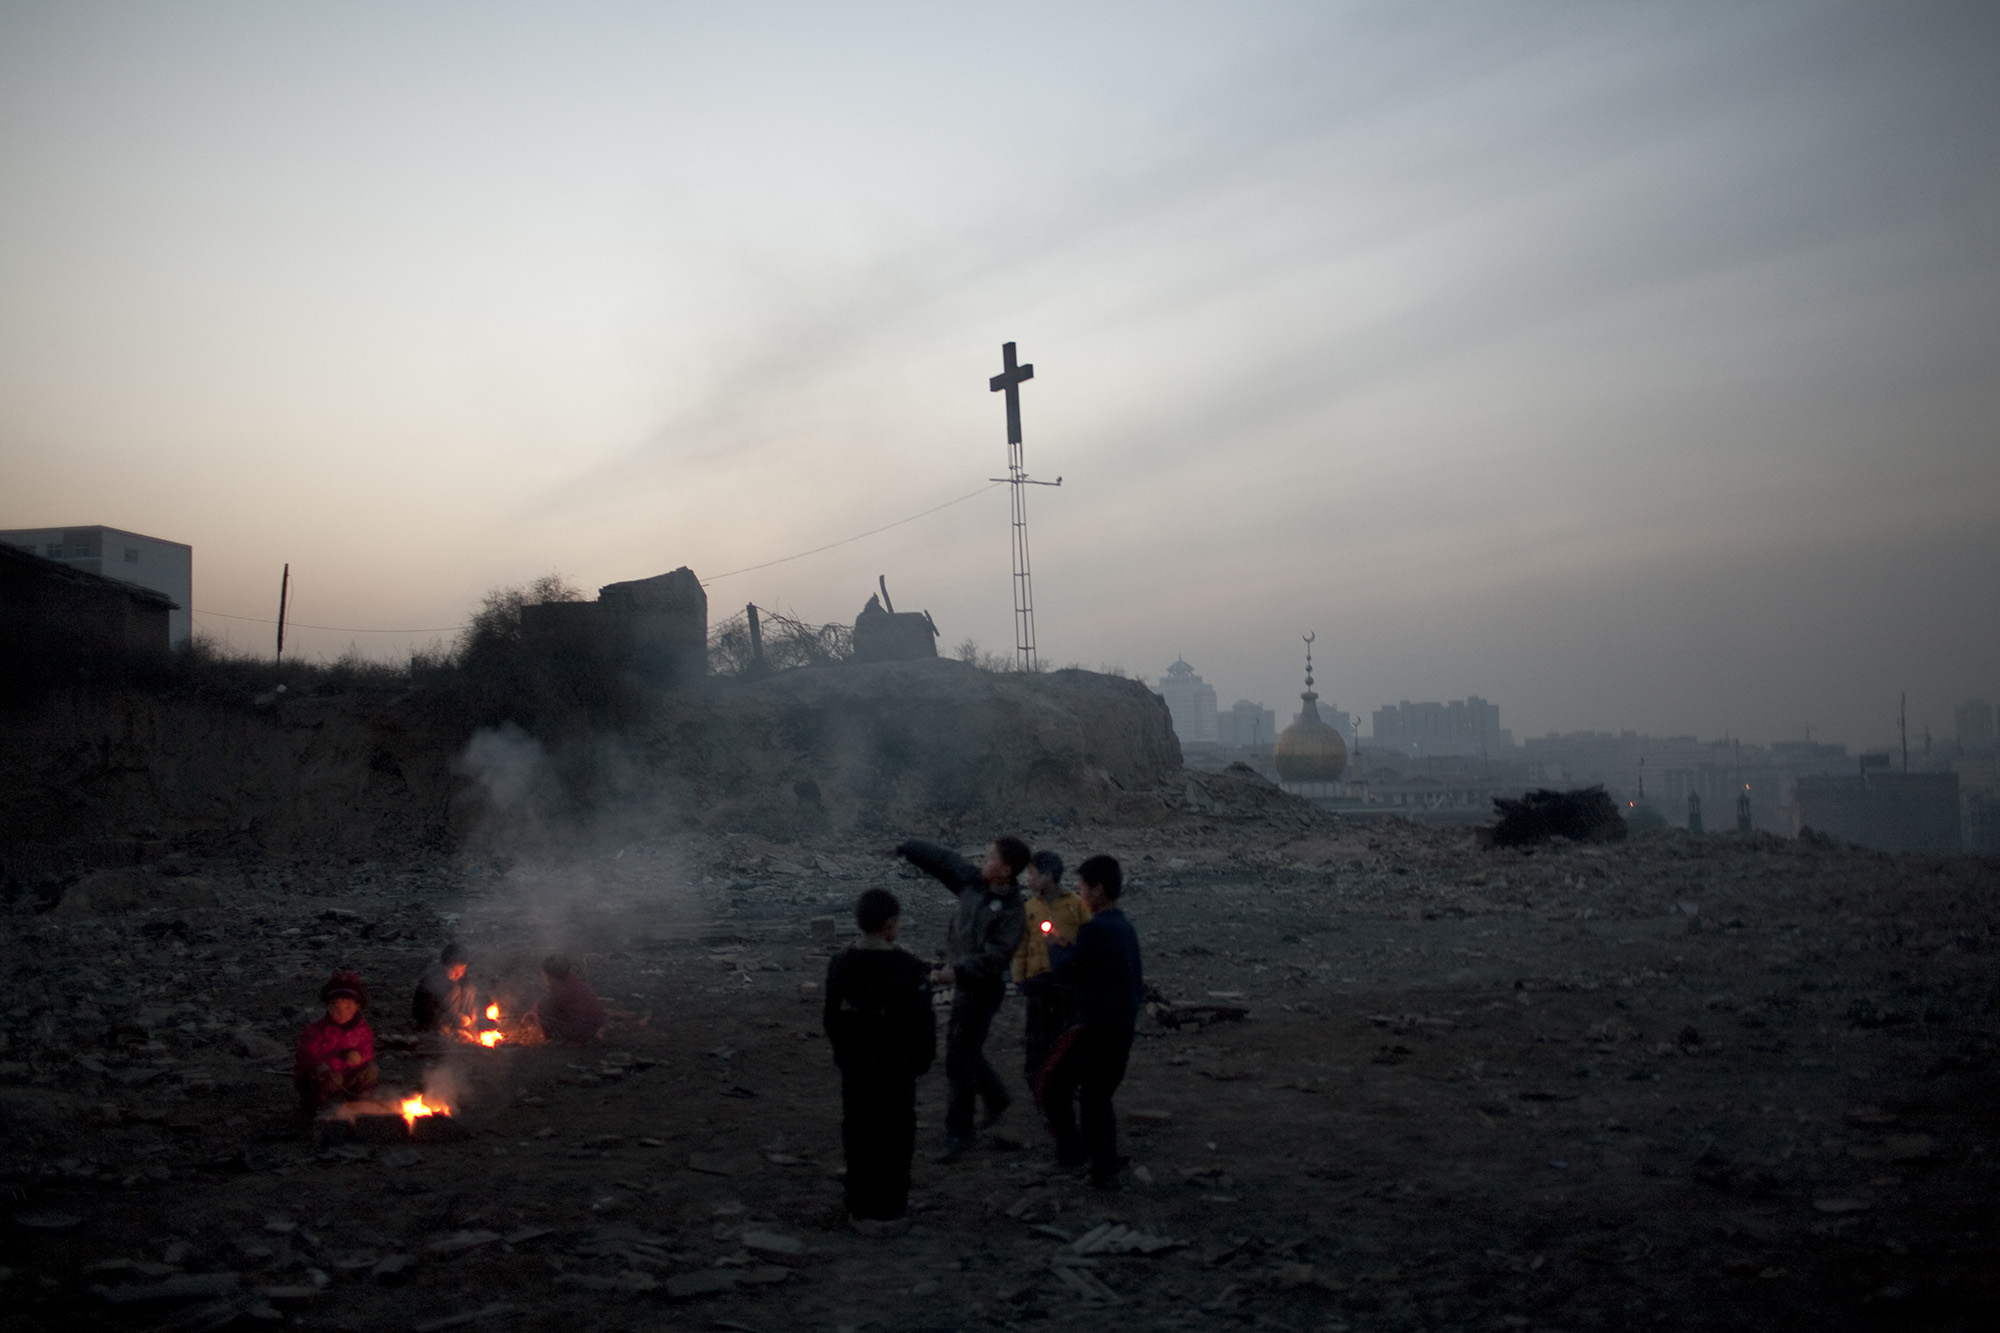 Children play with fireworks on a wasteland.